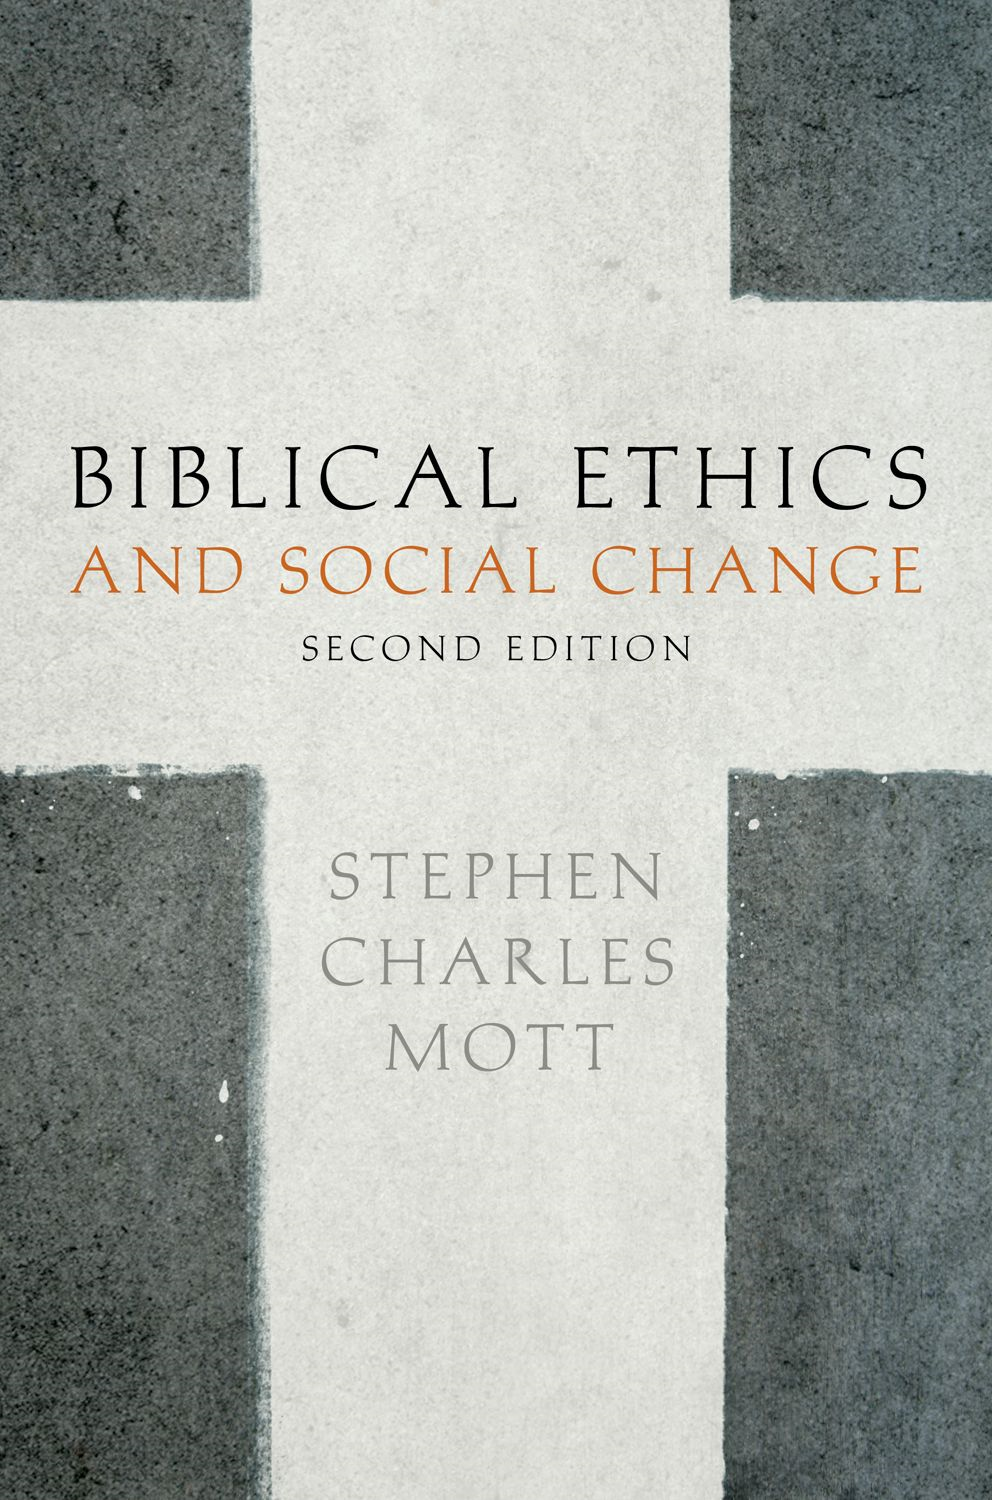 Biblical Ethics and Social Change